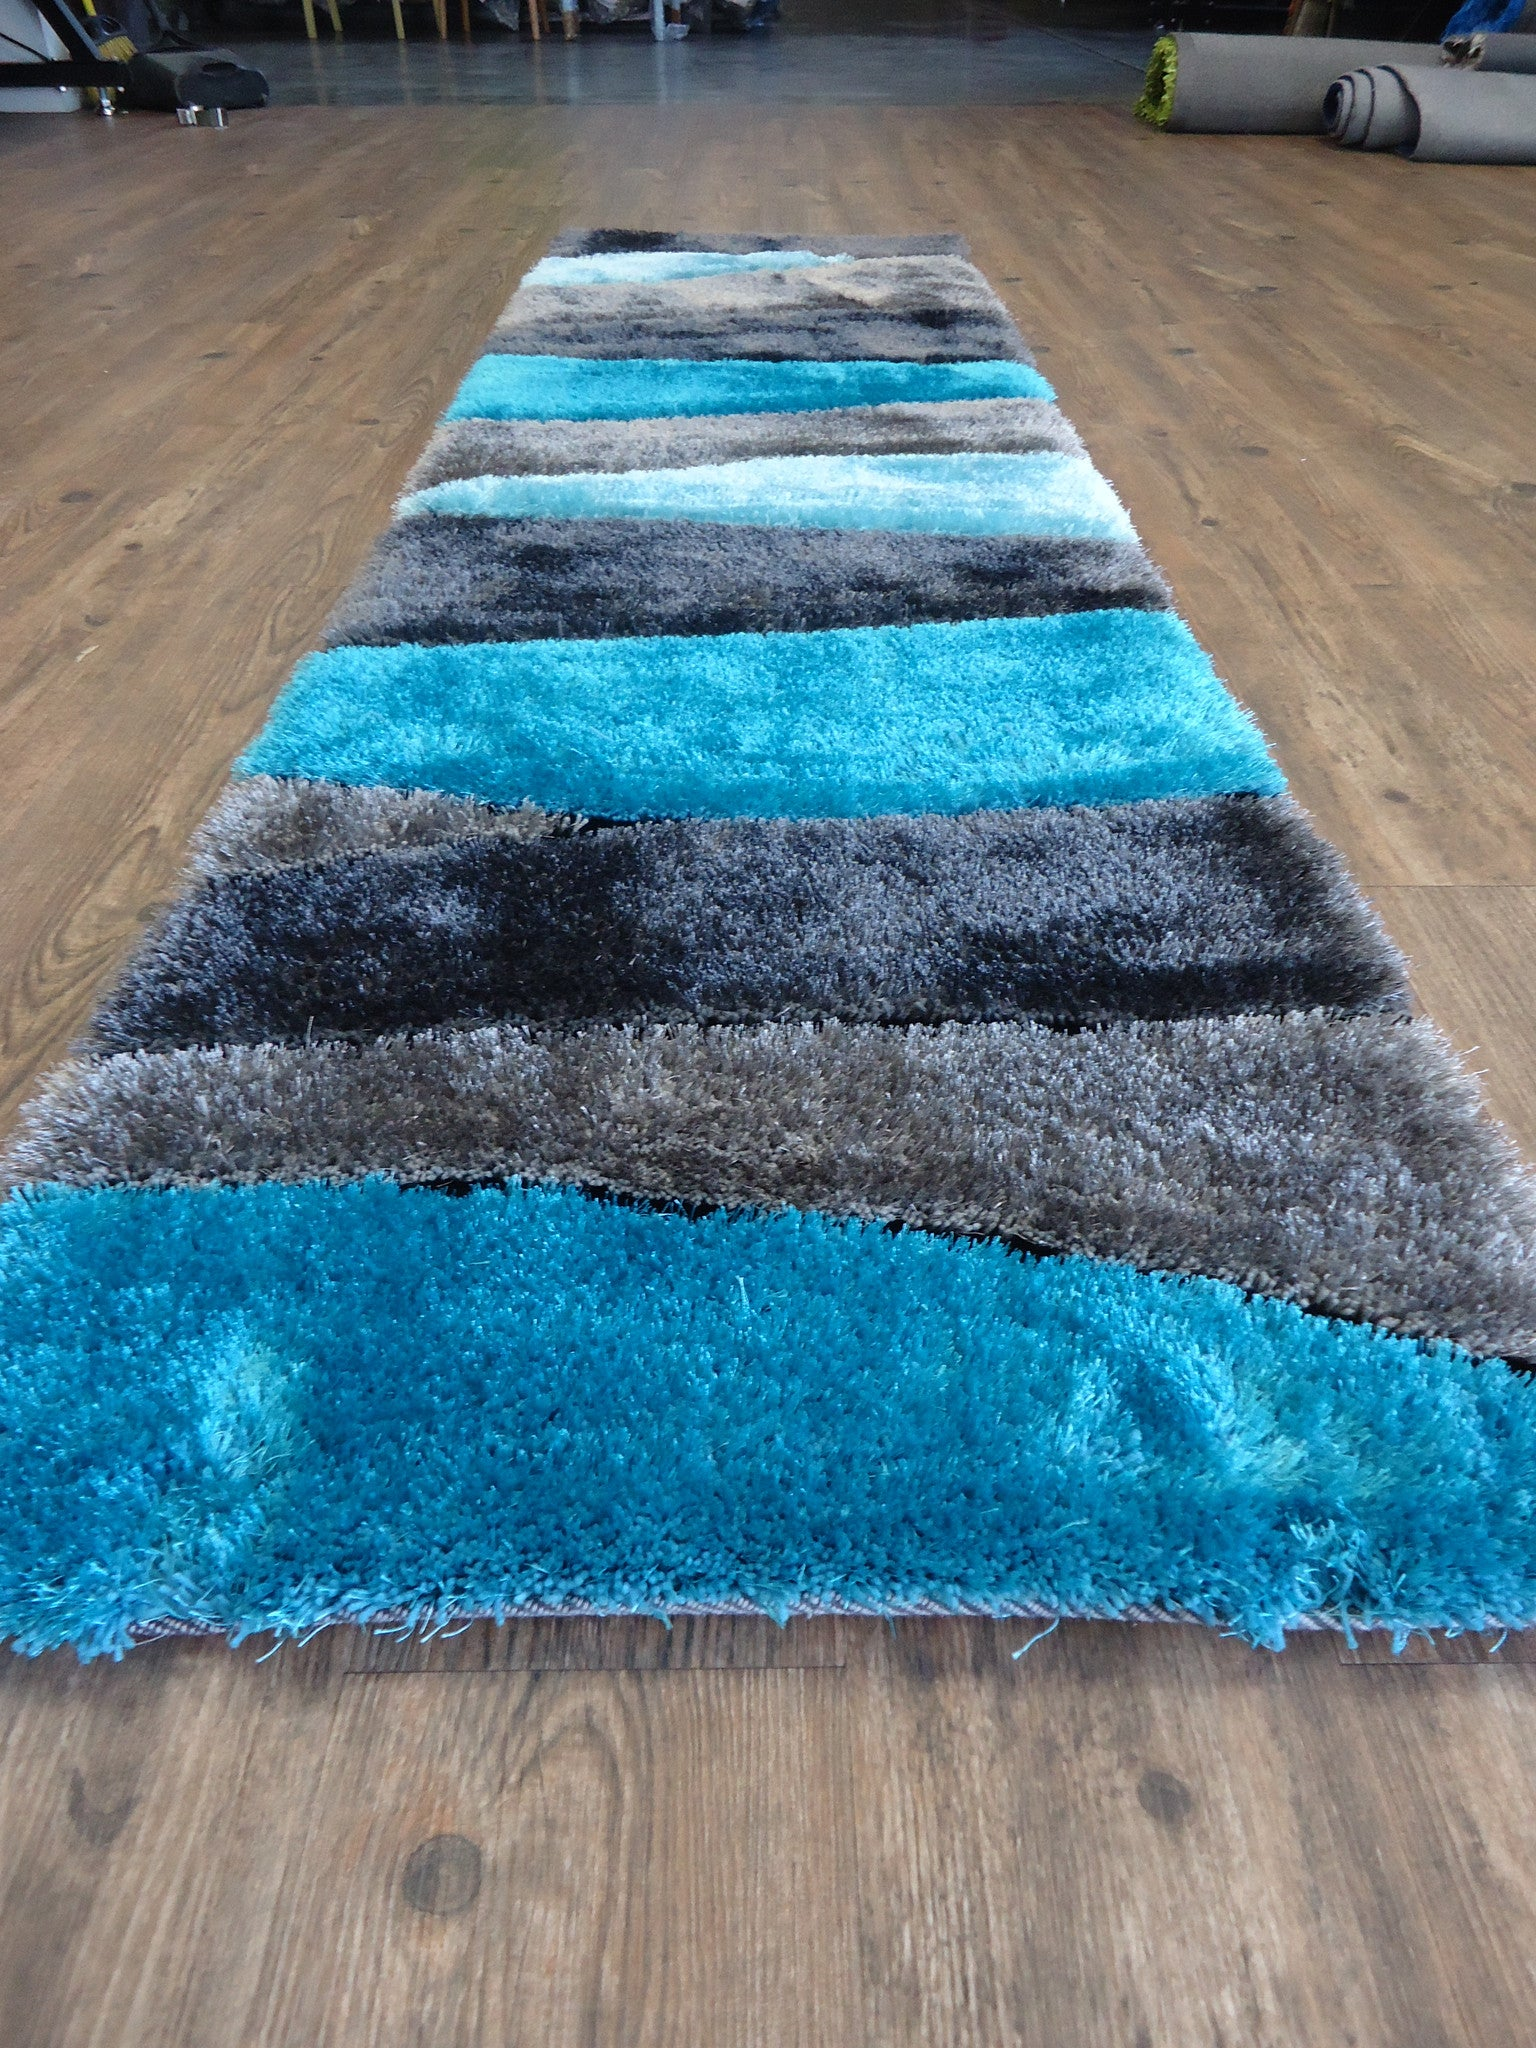 ... Handmade Vibrant Gray With Blue Shag Area Rug With Hand Carved Design , Area  Rug ...